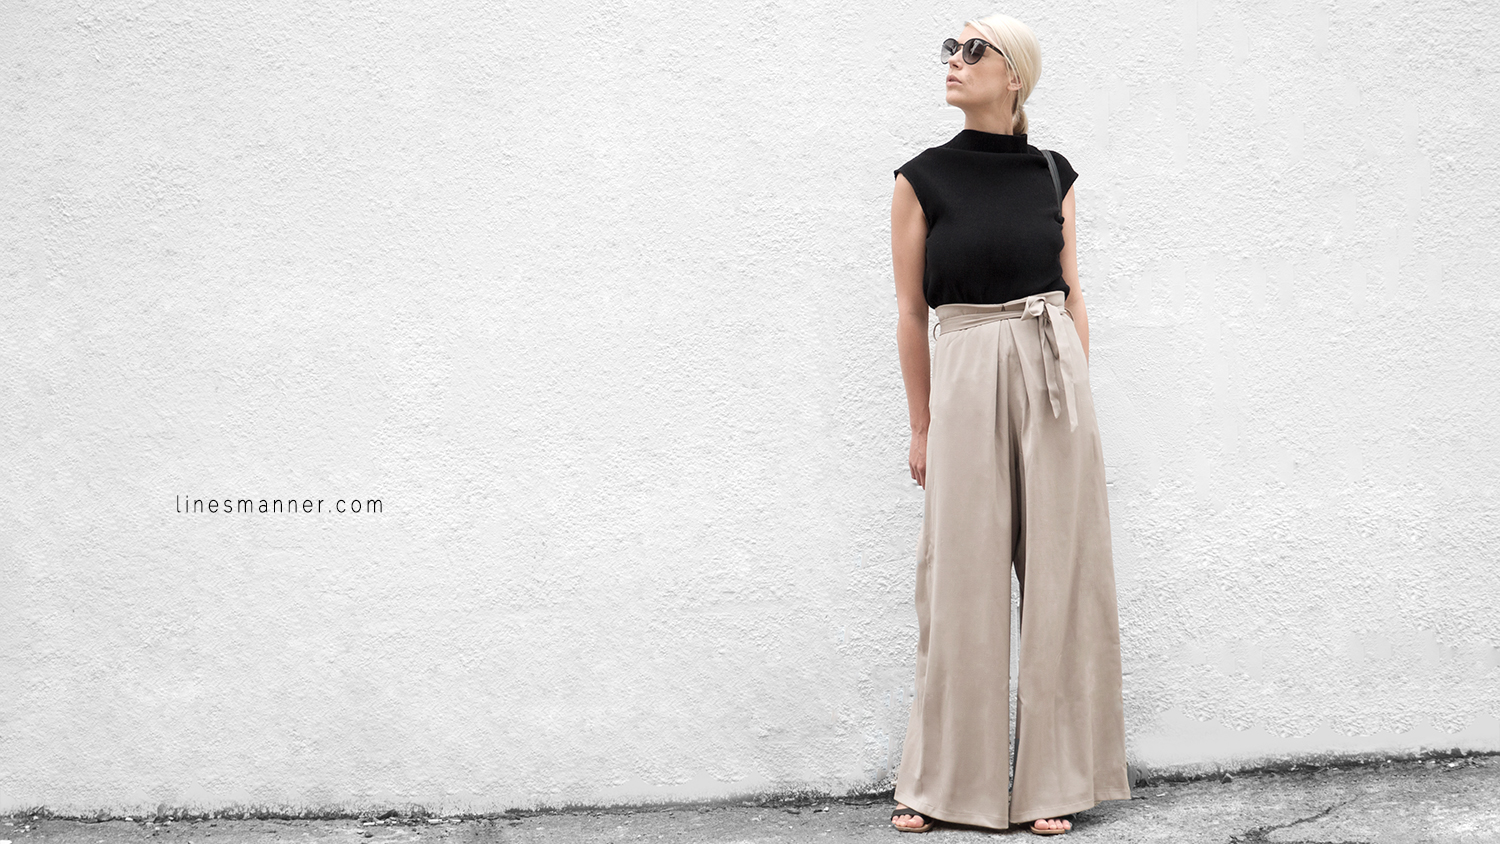 Lines-Manner-Neutrals-Quality-Lora_Gene-Wide_Leg_Pant-Modern-Sophistication-Tailored-Essentials-Details-Simplicity-Summer_vibes-Volume-Proportion-Flowy-1